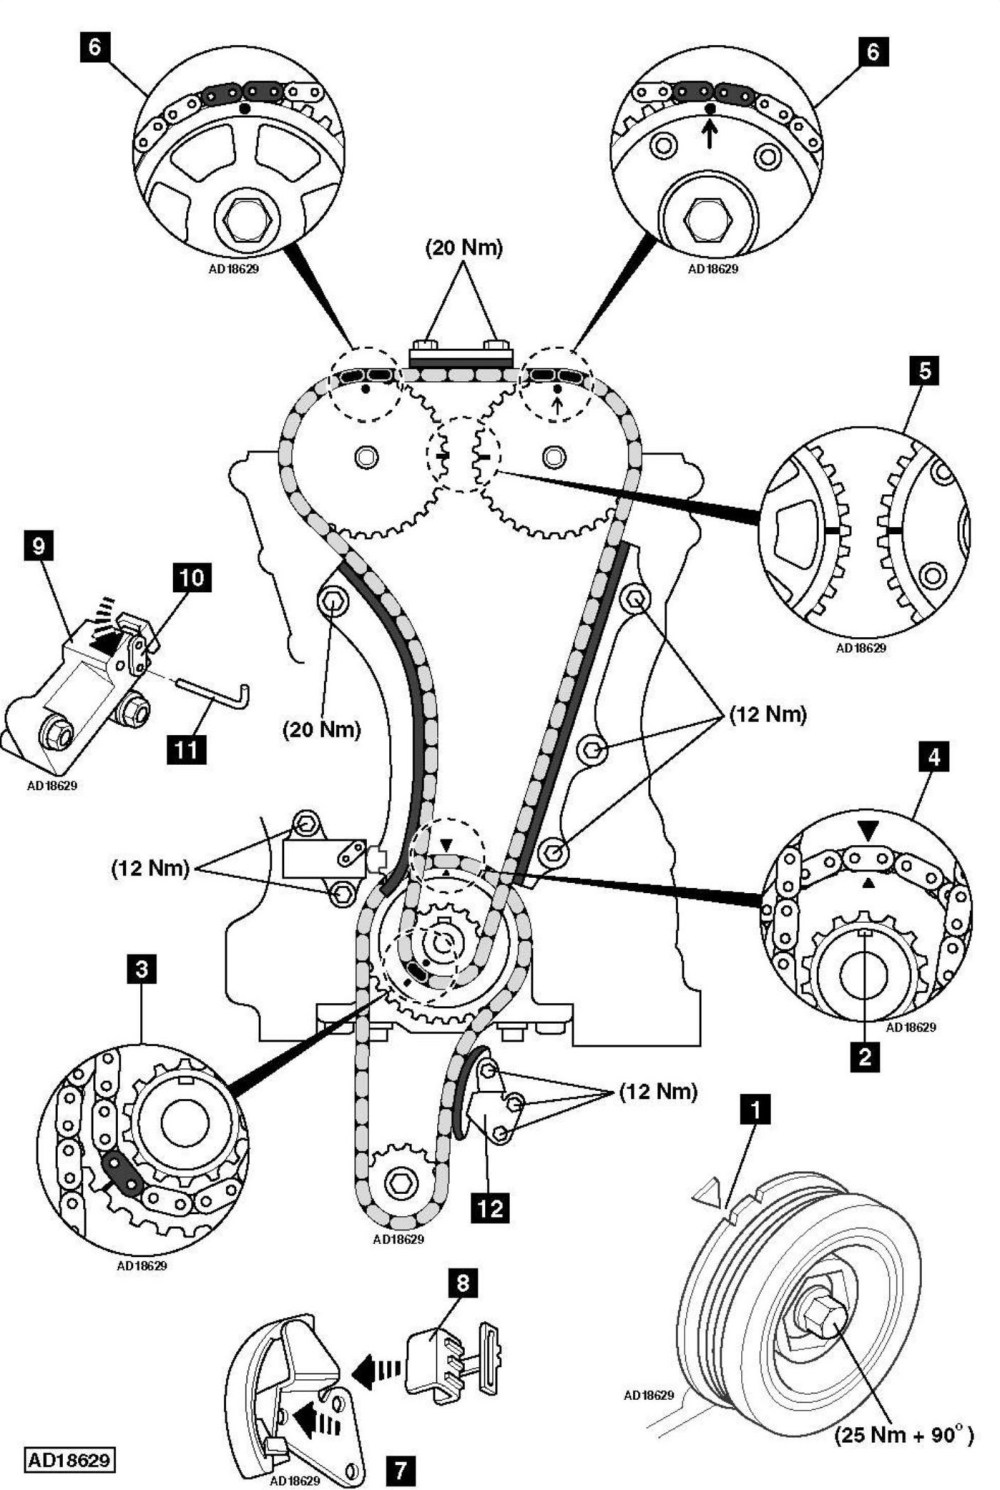 medium resolution of how to replace timing chain on honda accord 2 4 2006 2001 hyundai santa fe serpentine belt diagram 2001 hyundai santa fe serpentine belt diagram